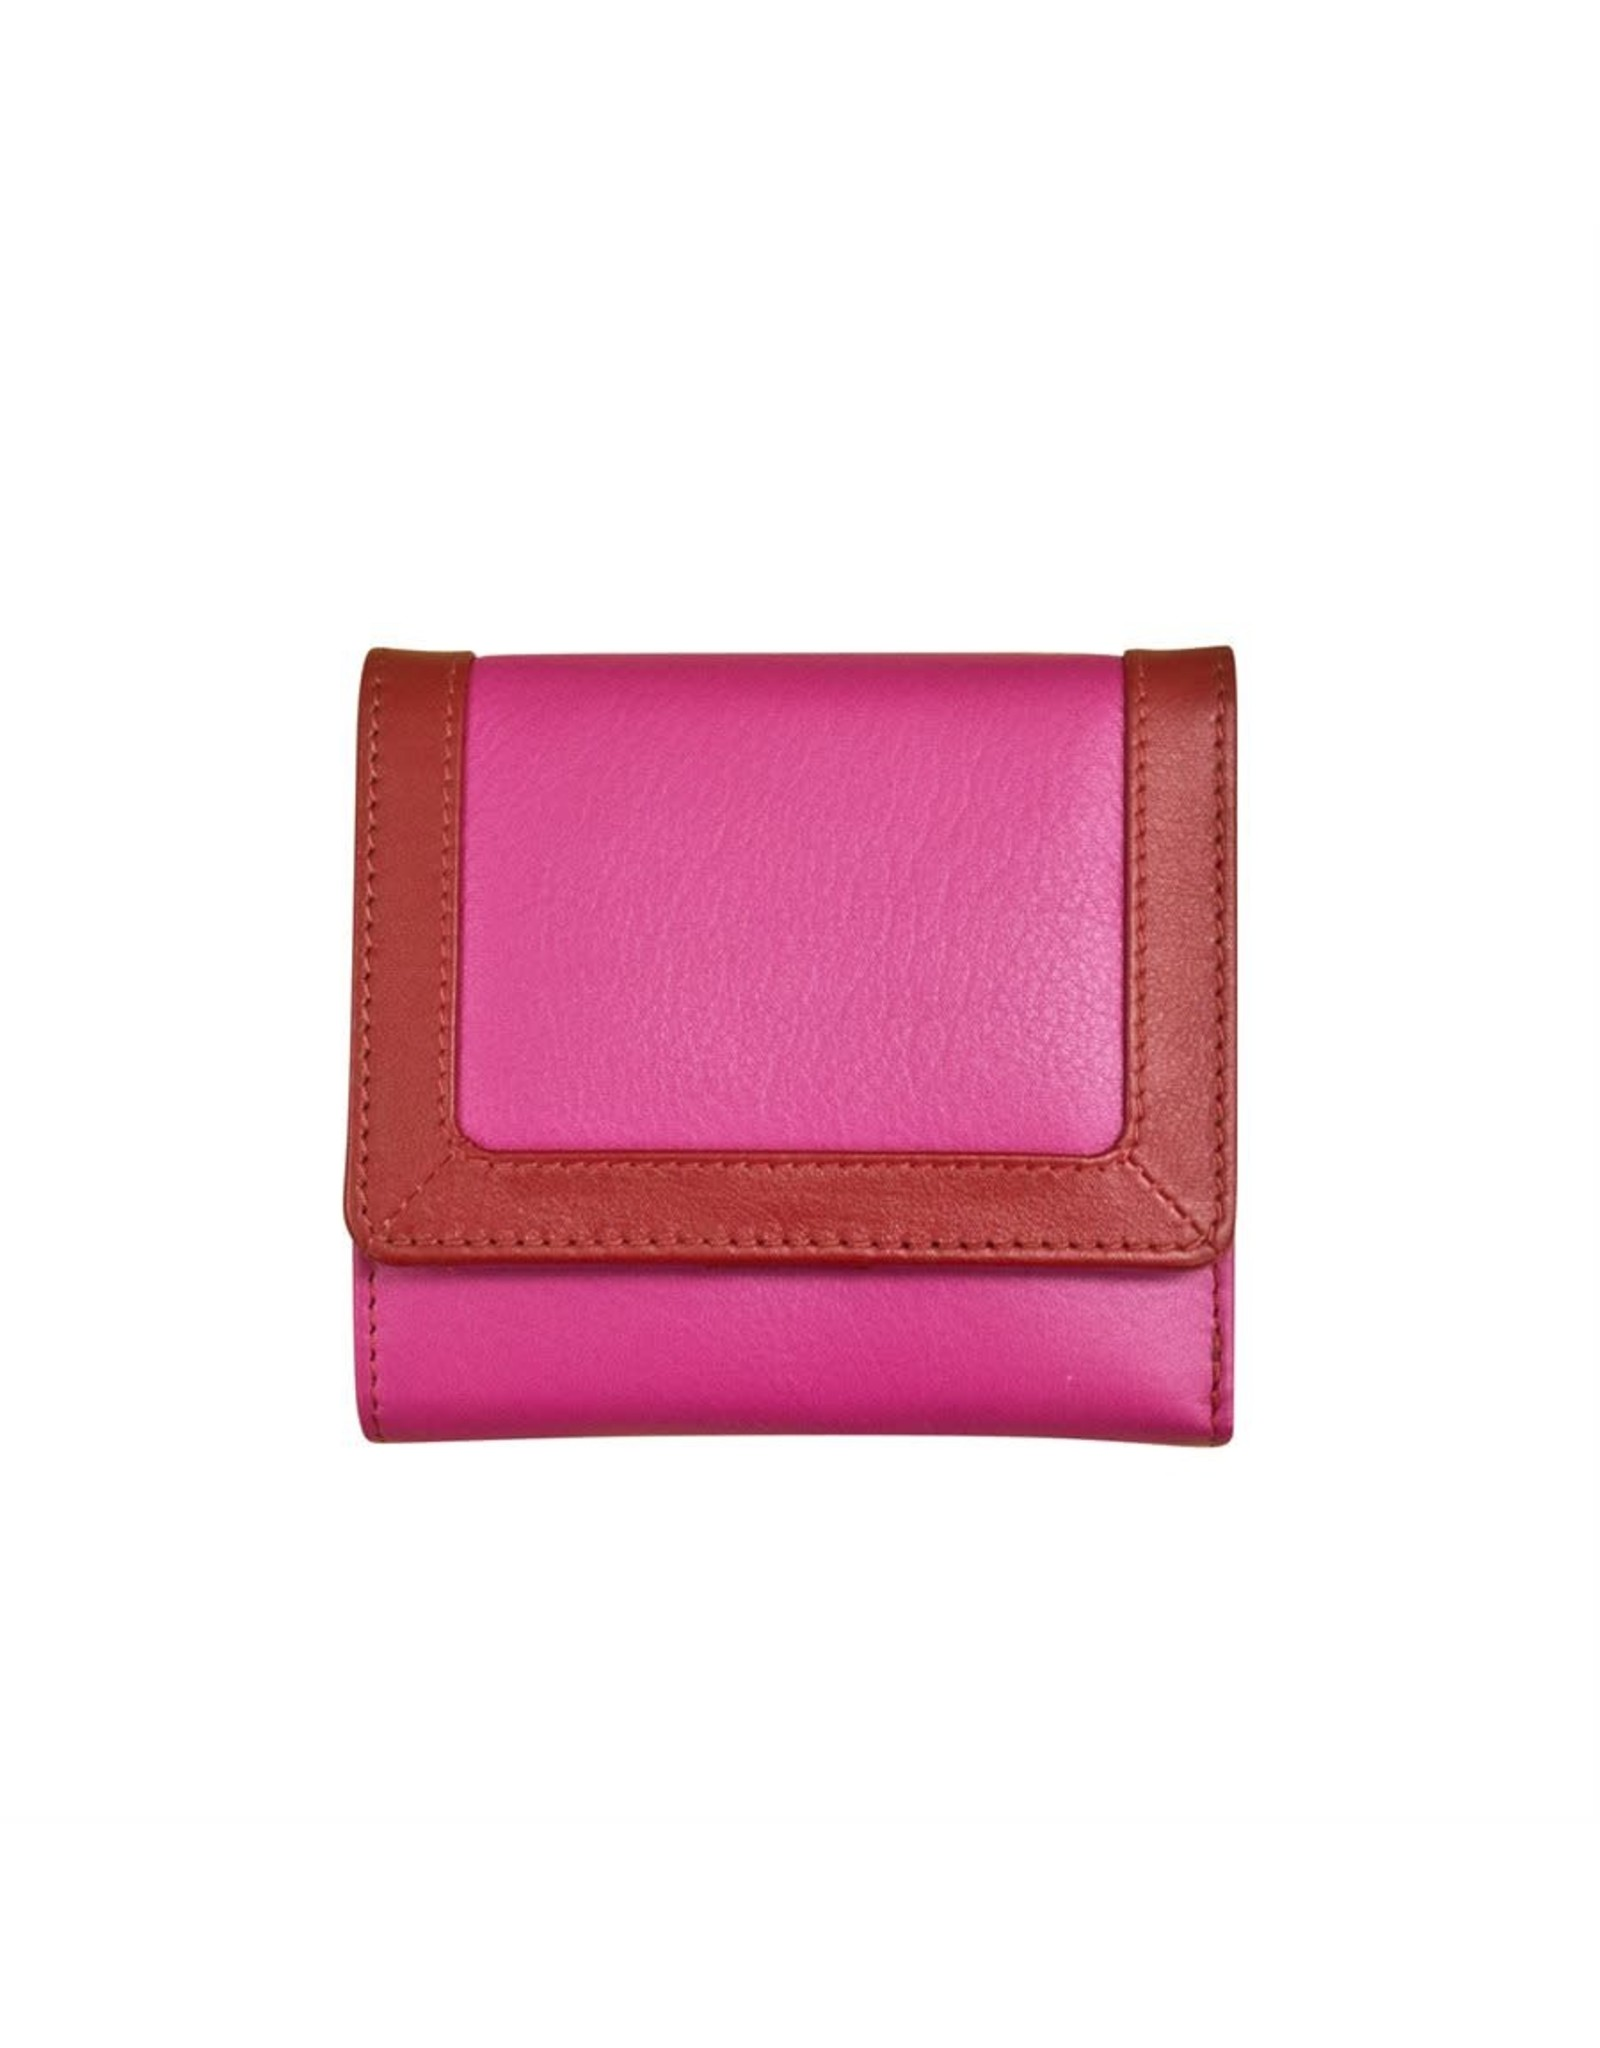 Leather Handbags and Accessories 7824 Rouge - RFID Tri-fold Color Block Mini Wallet